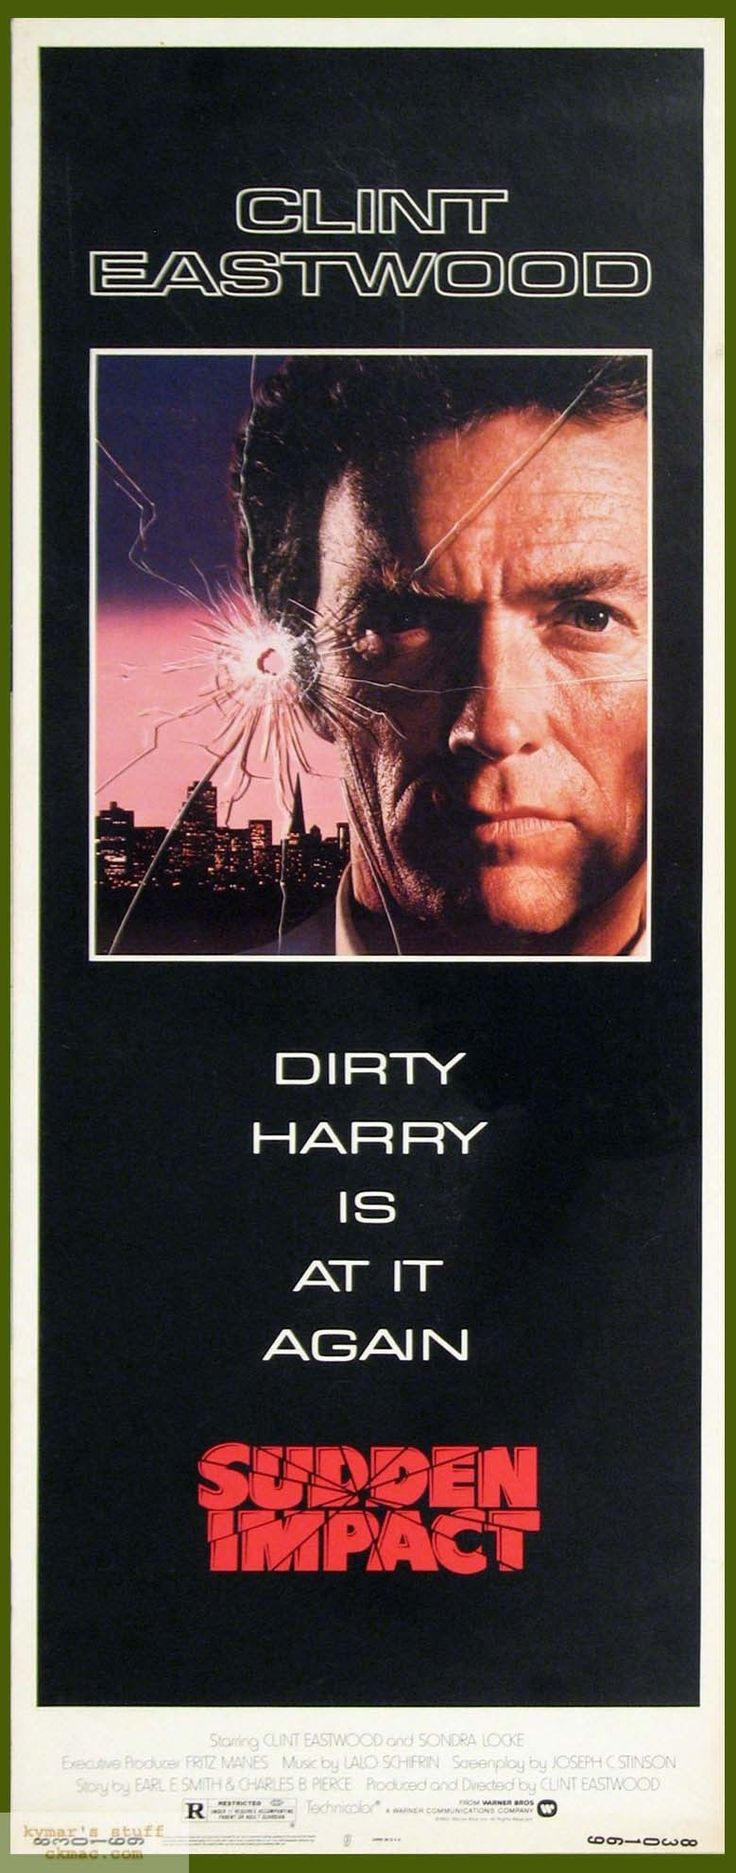 SUDDEN IMPACT - Clint Eastwood as 'Dirty Harry' Callahan - Produced & Directed by Clint Eastwood - Warner Bros. - Insert movie poster.